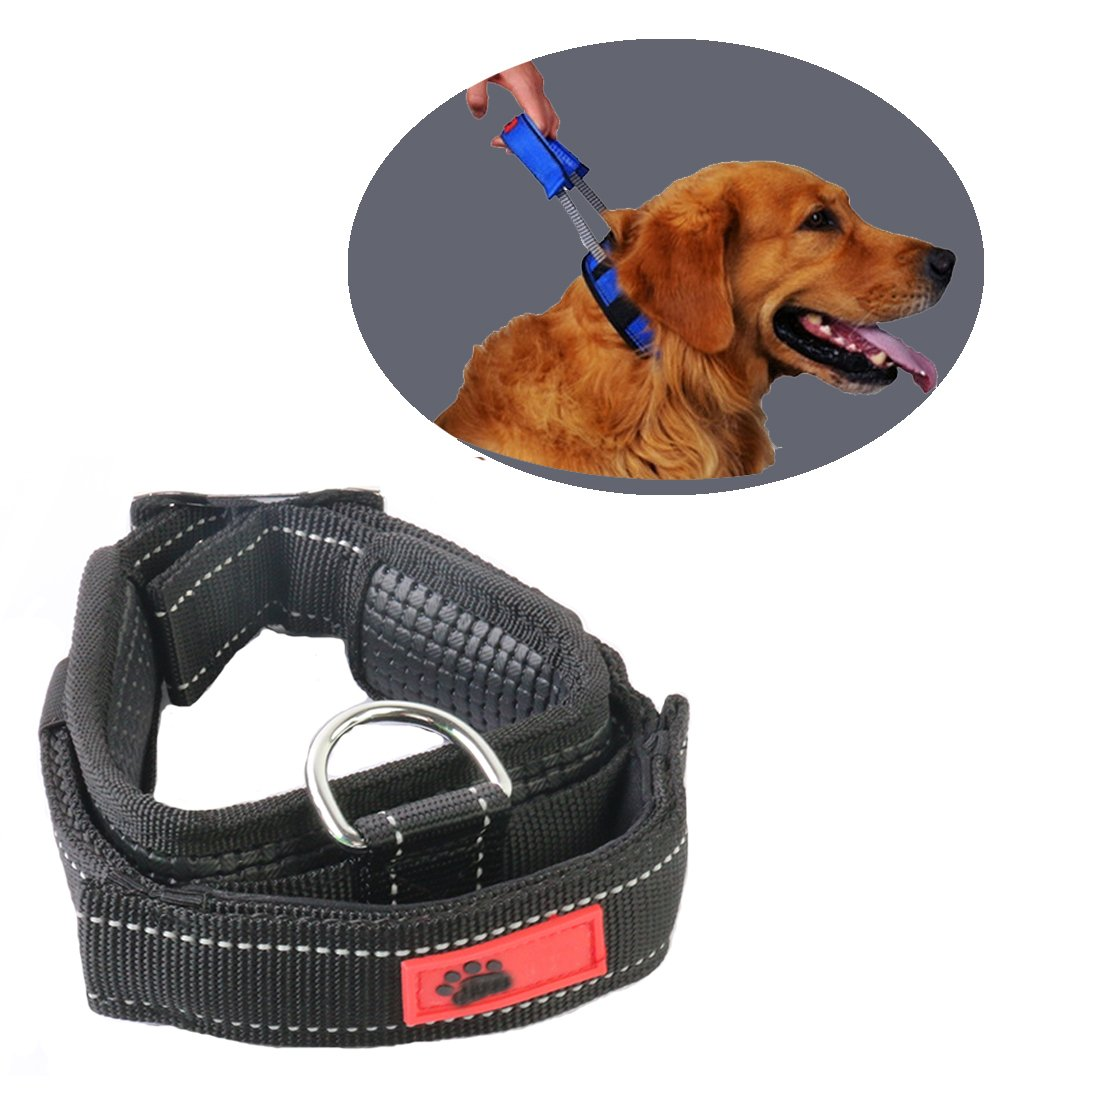 Black M Black M Comfort Padded Dog Collar by Schnappy,Nylon Webbing Pet Sports Dog Tag Collar with Convenient Retractable Leash for Walking (M, Black)